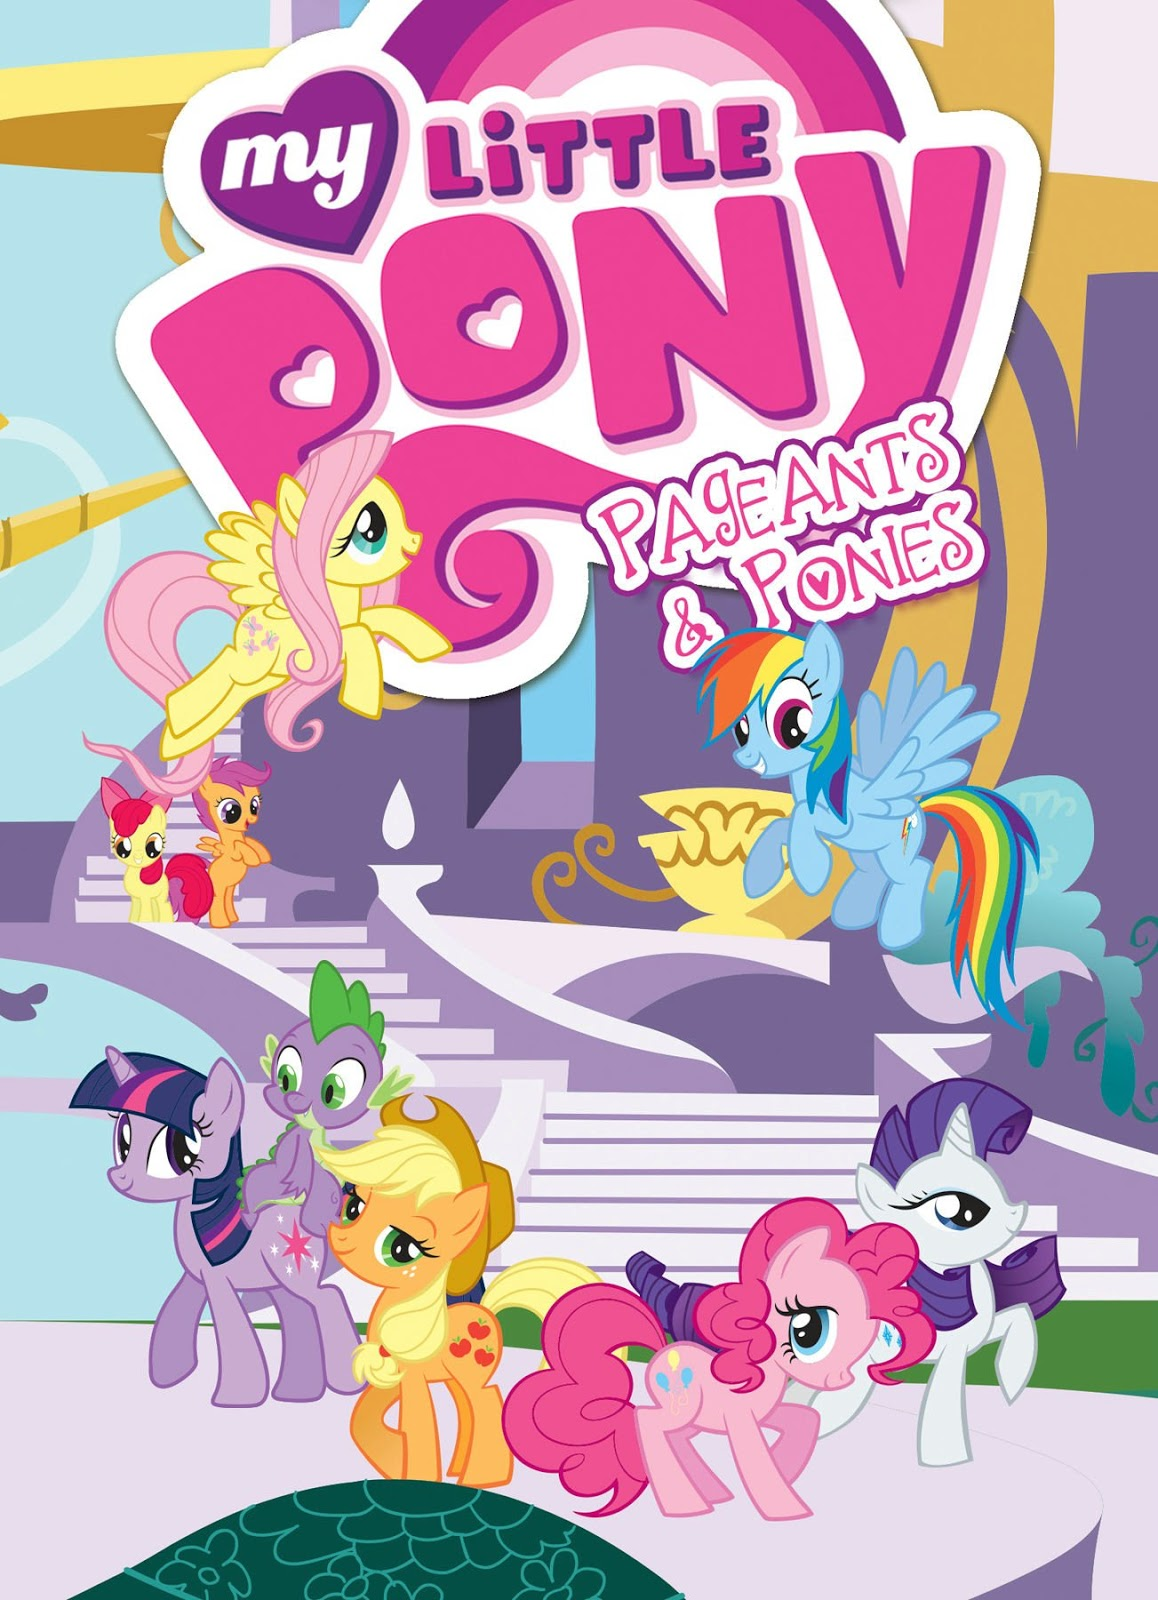 My Little Pony Pageants Amp Ponies Cover Released Mlp Merch